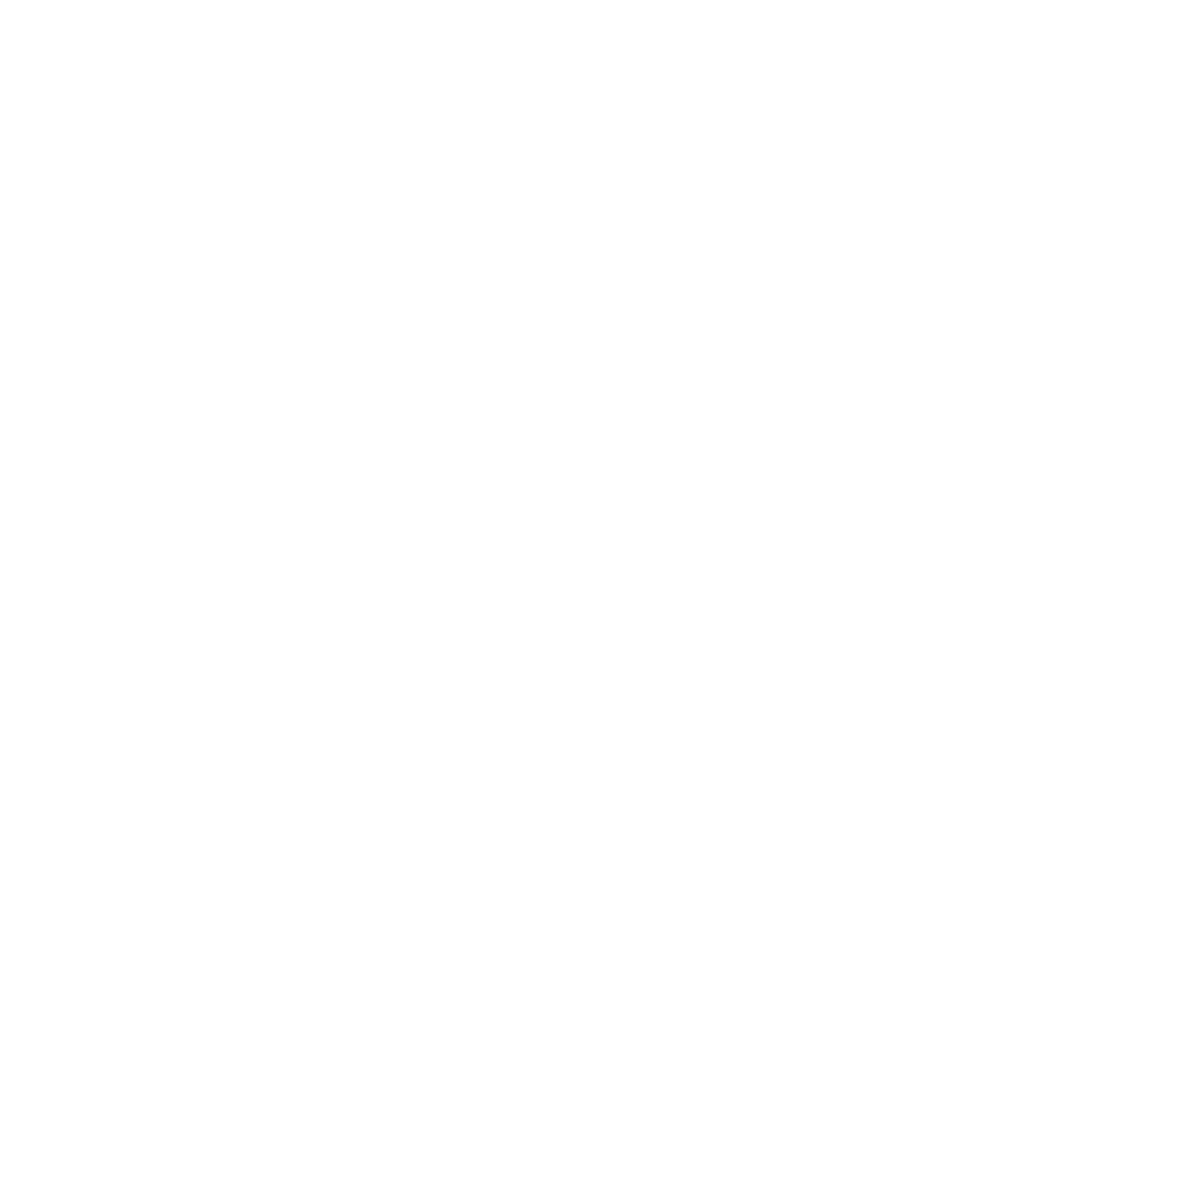 Salvation army logo png. Shield ground glass media